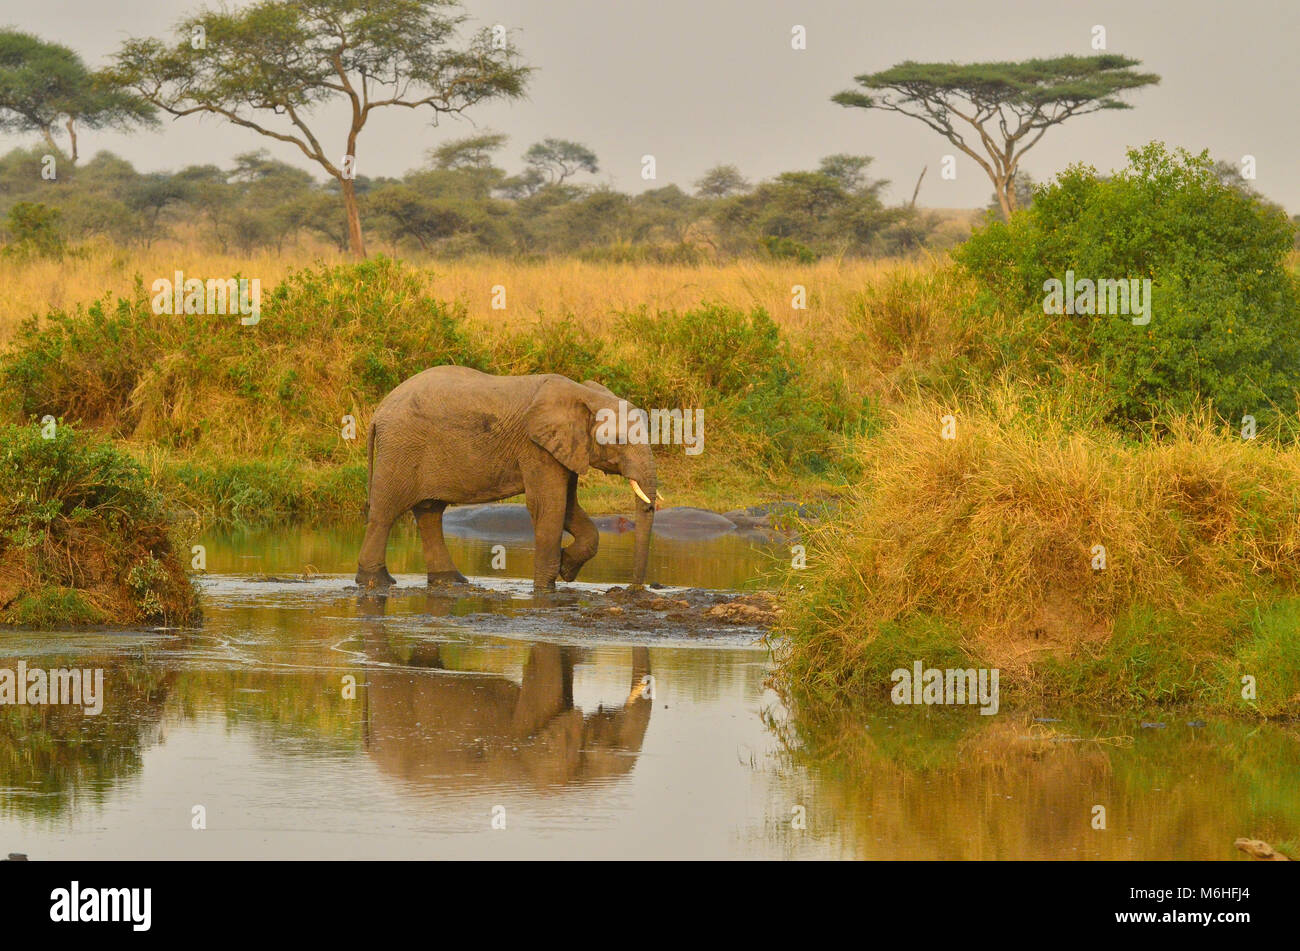 Serengeti National Park in Tanzania, is one of the most spectacular wildlife destinations on earth. Elephant crossing - Stock Image